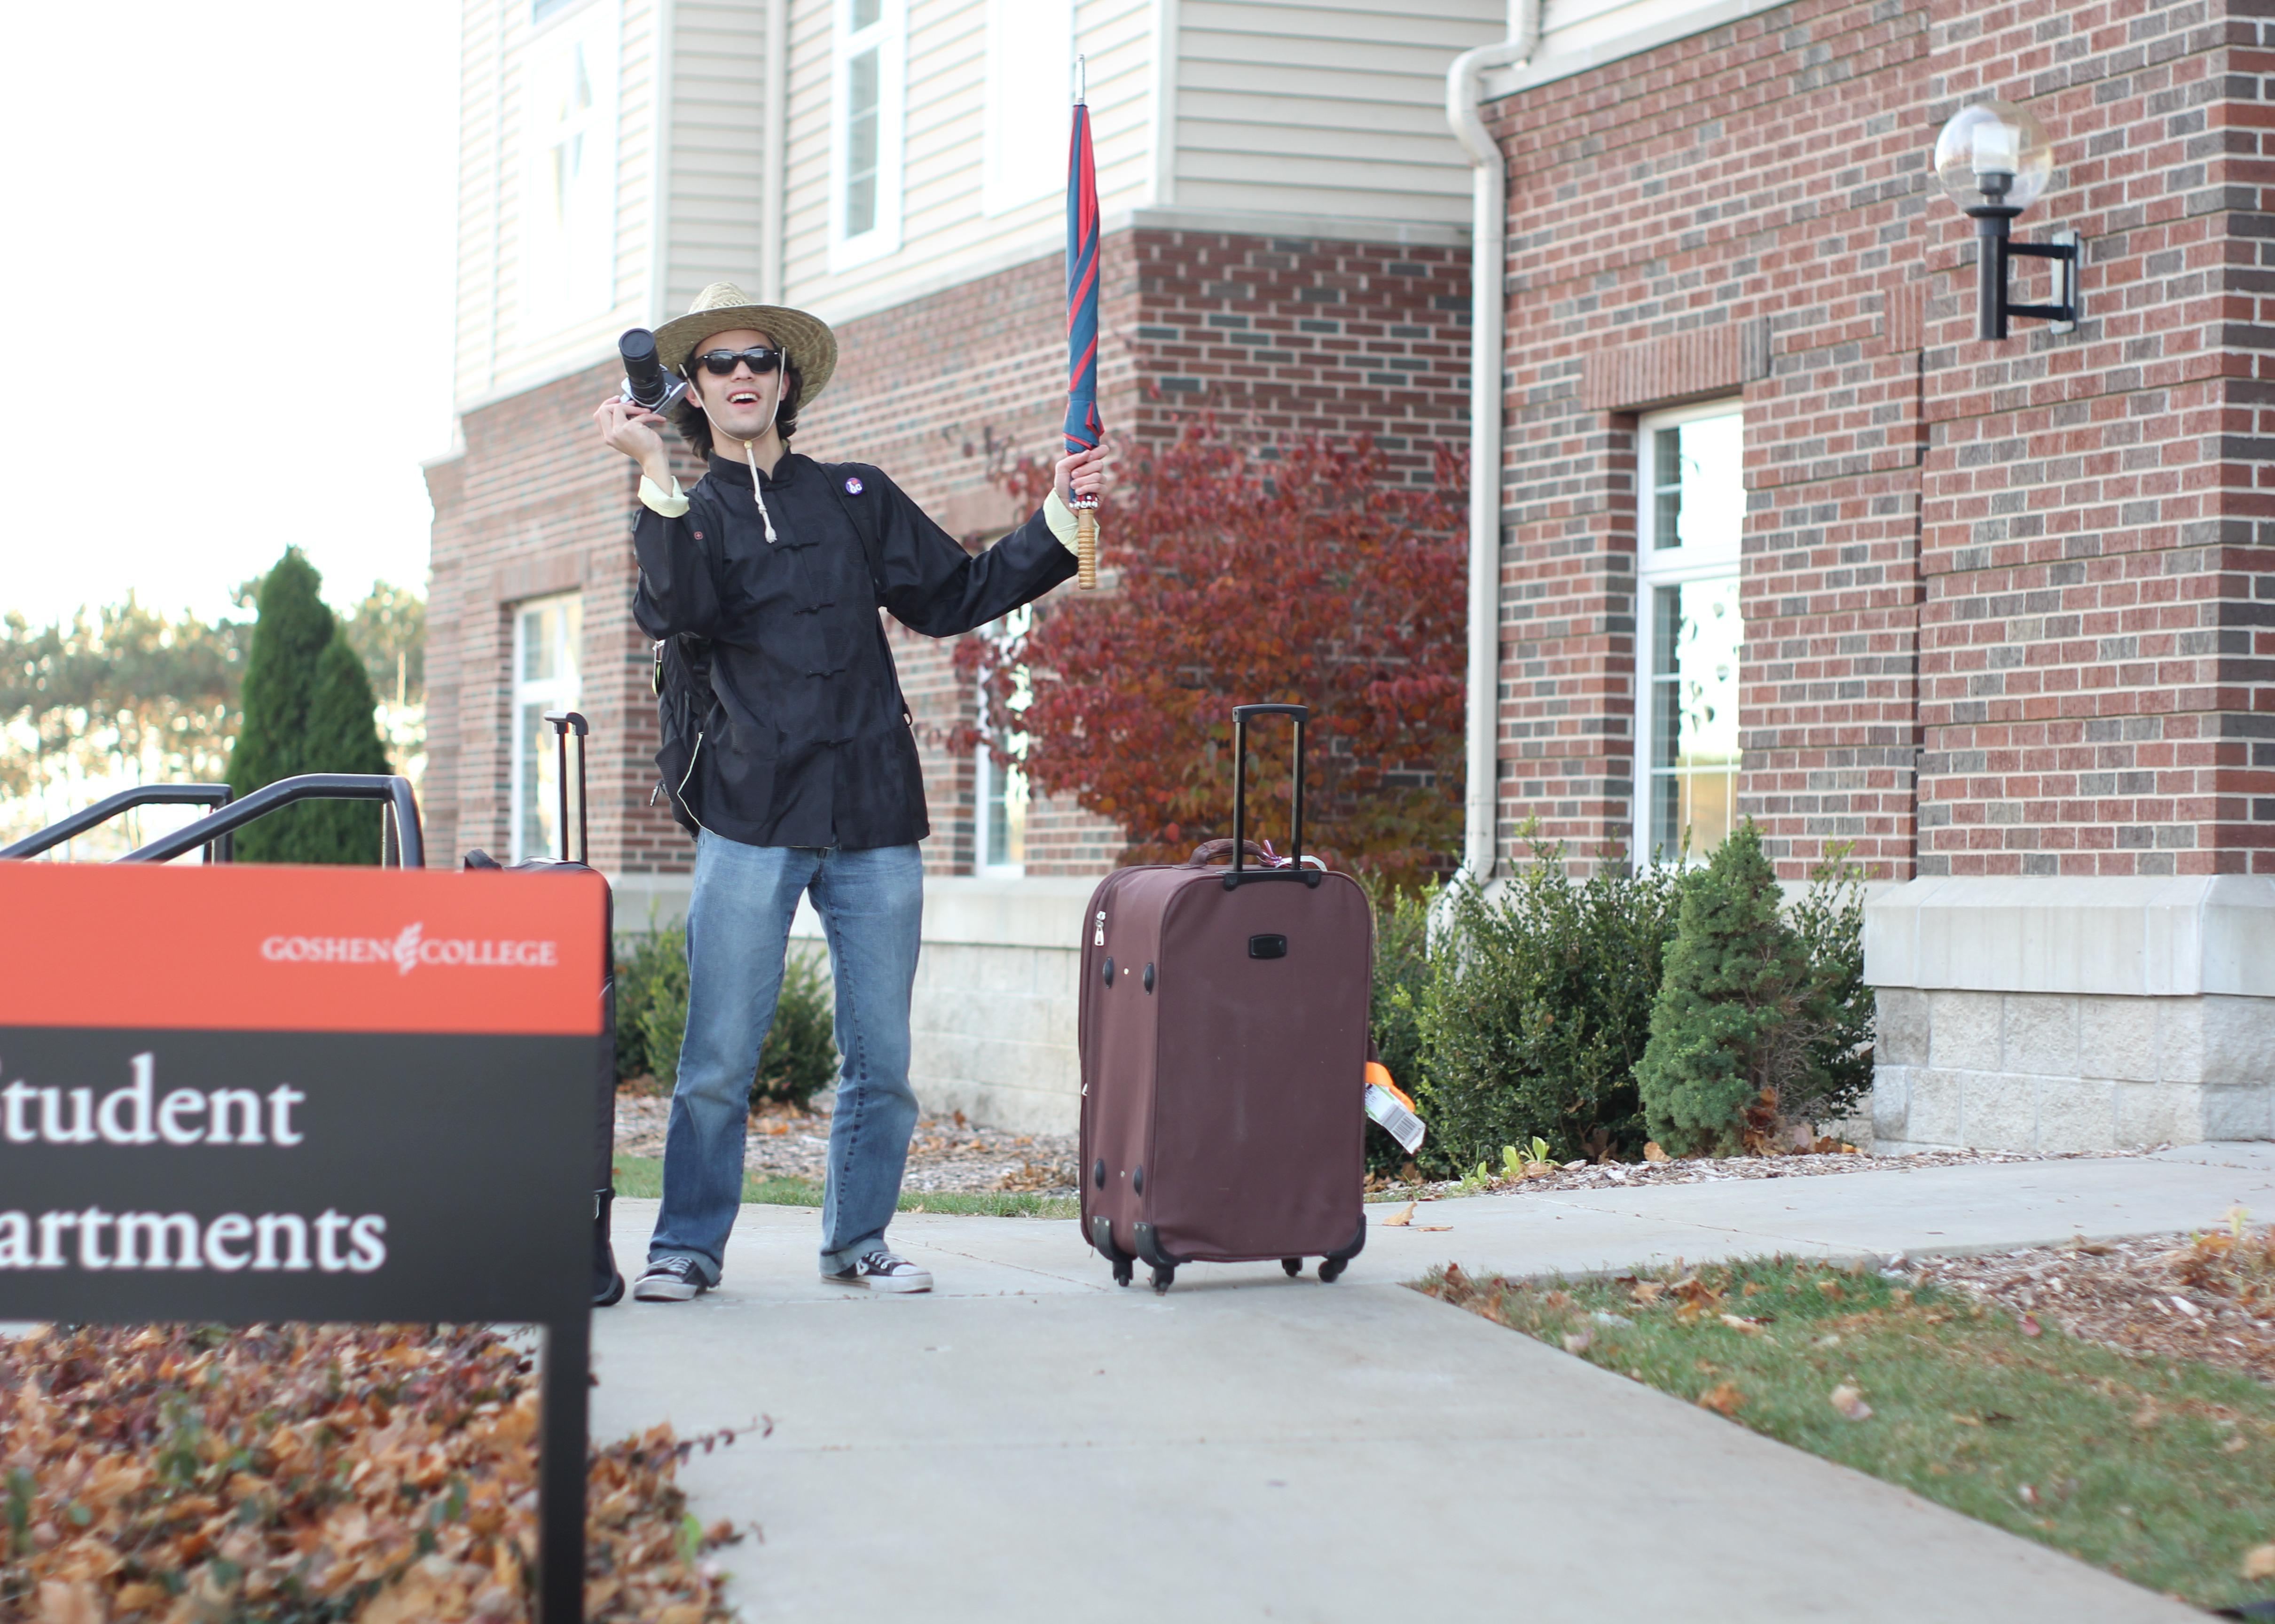 Reuben Ng prepares to leave the student apartments with his suitcase for SST